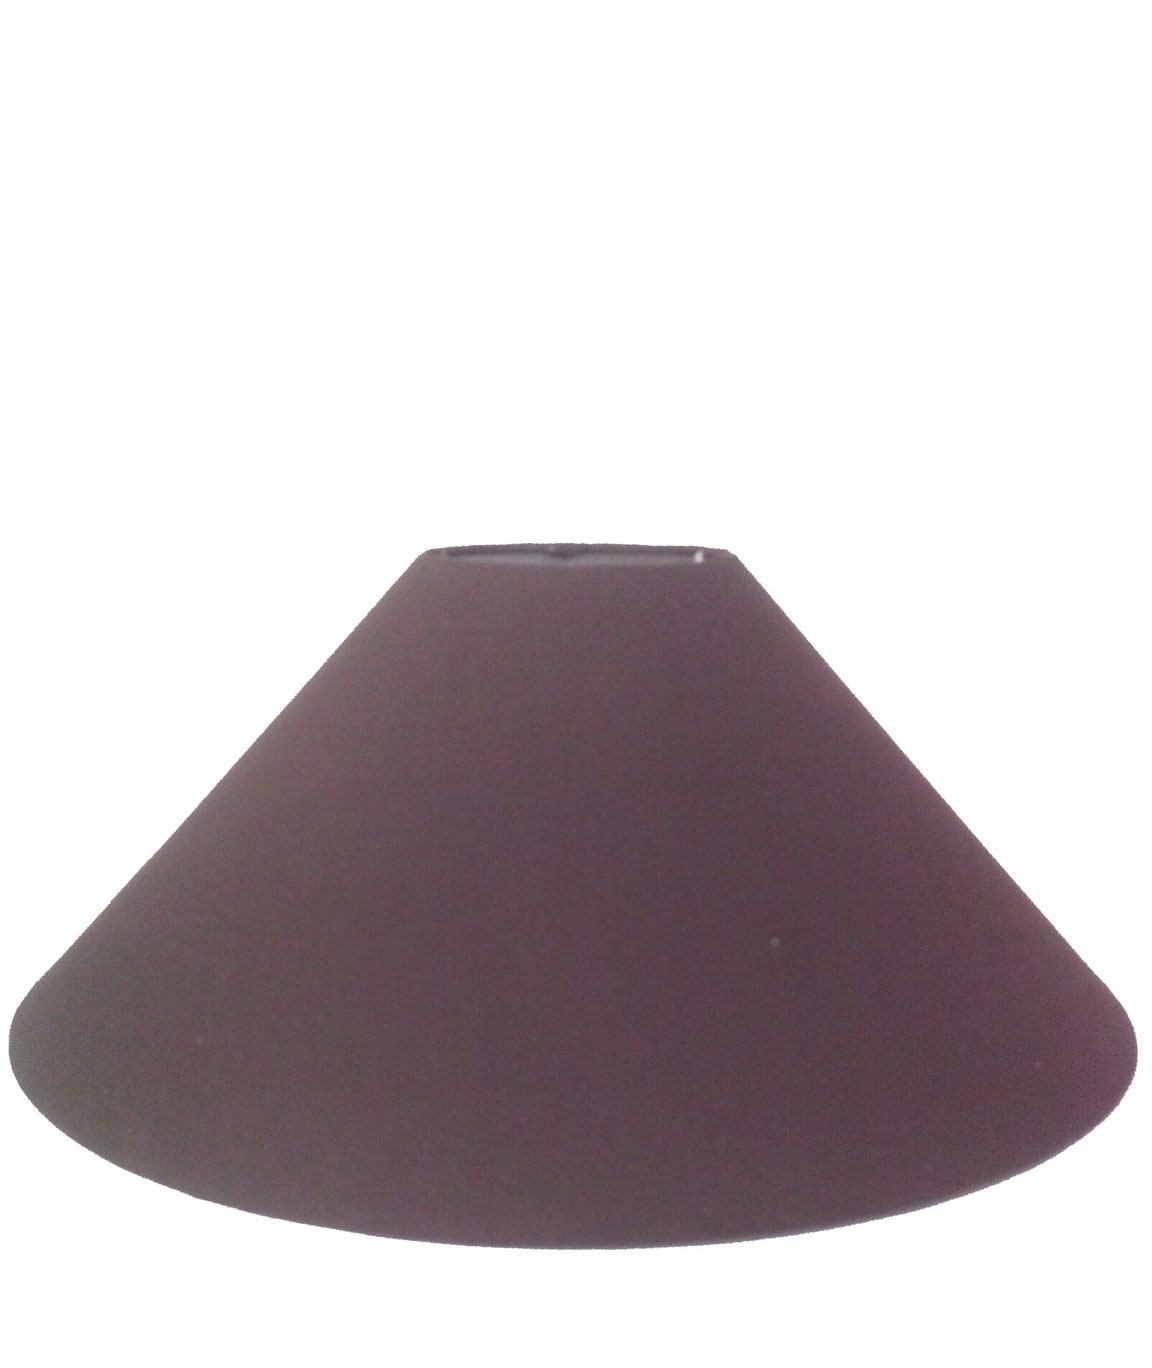 RDC 13 Inches Round Plain Dark Brown Lamp Shade for Table Lamp